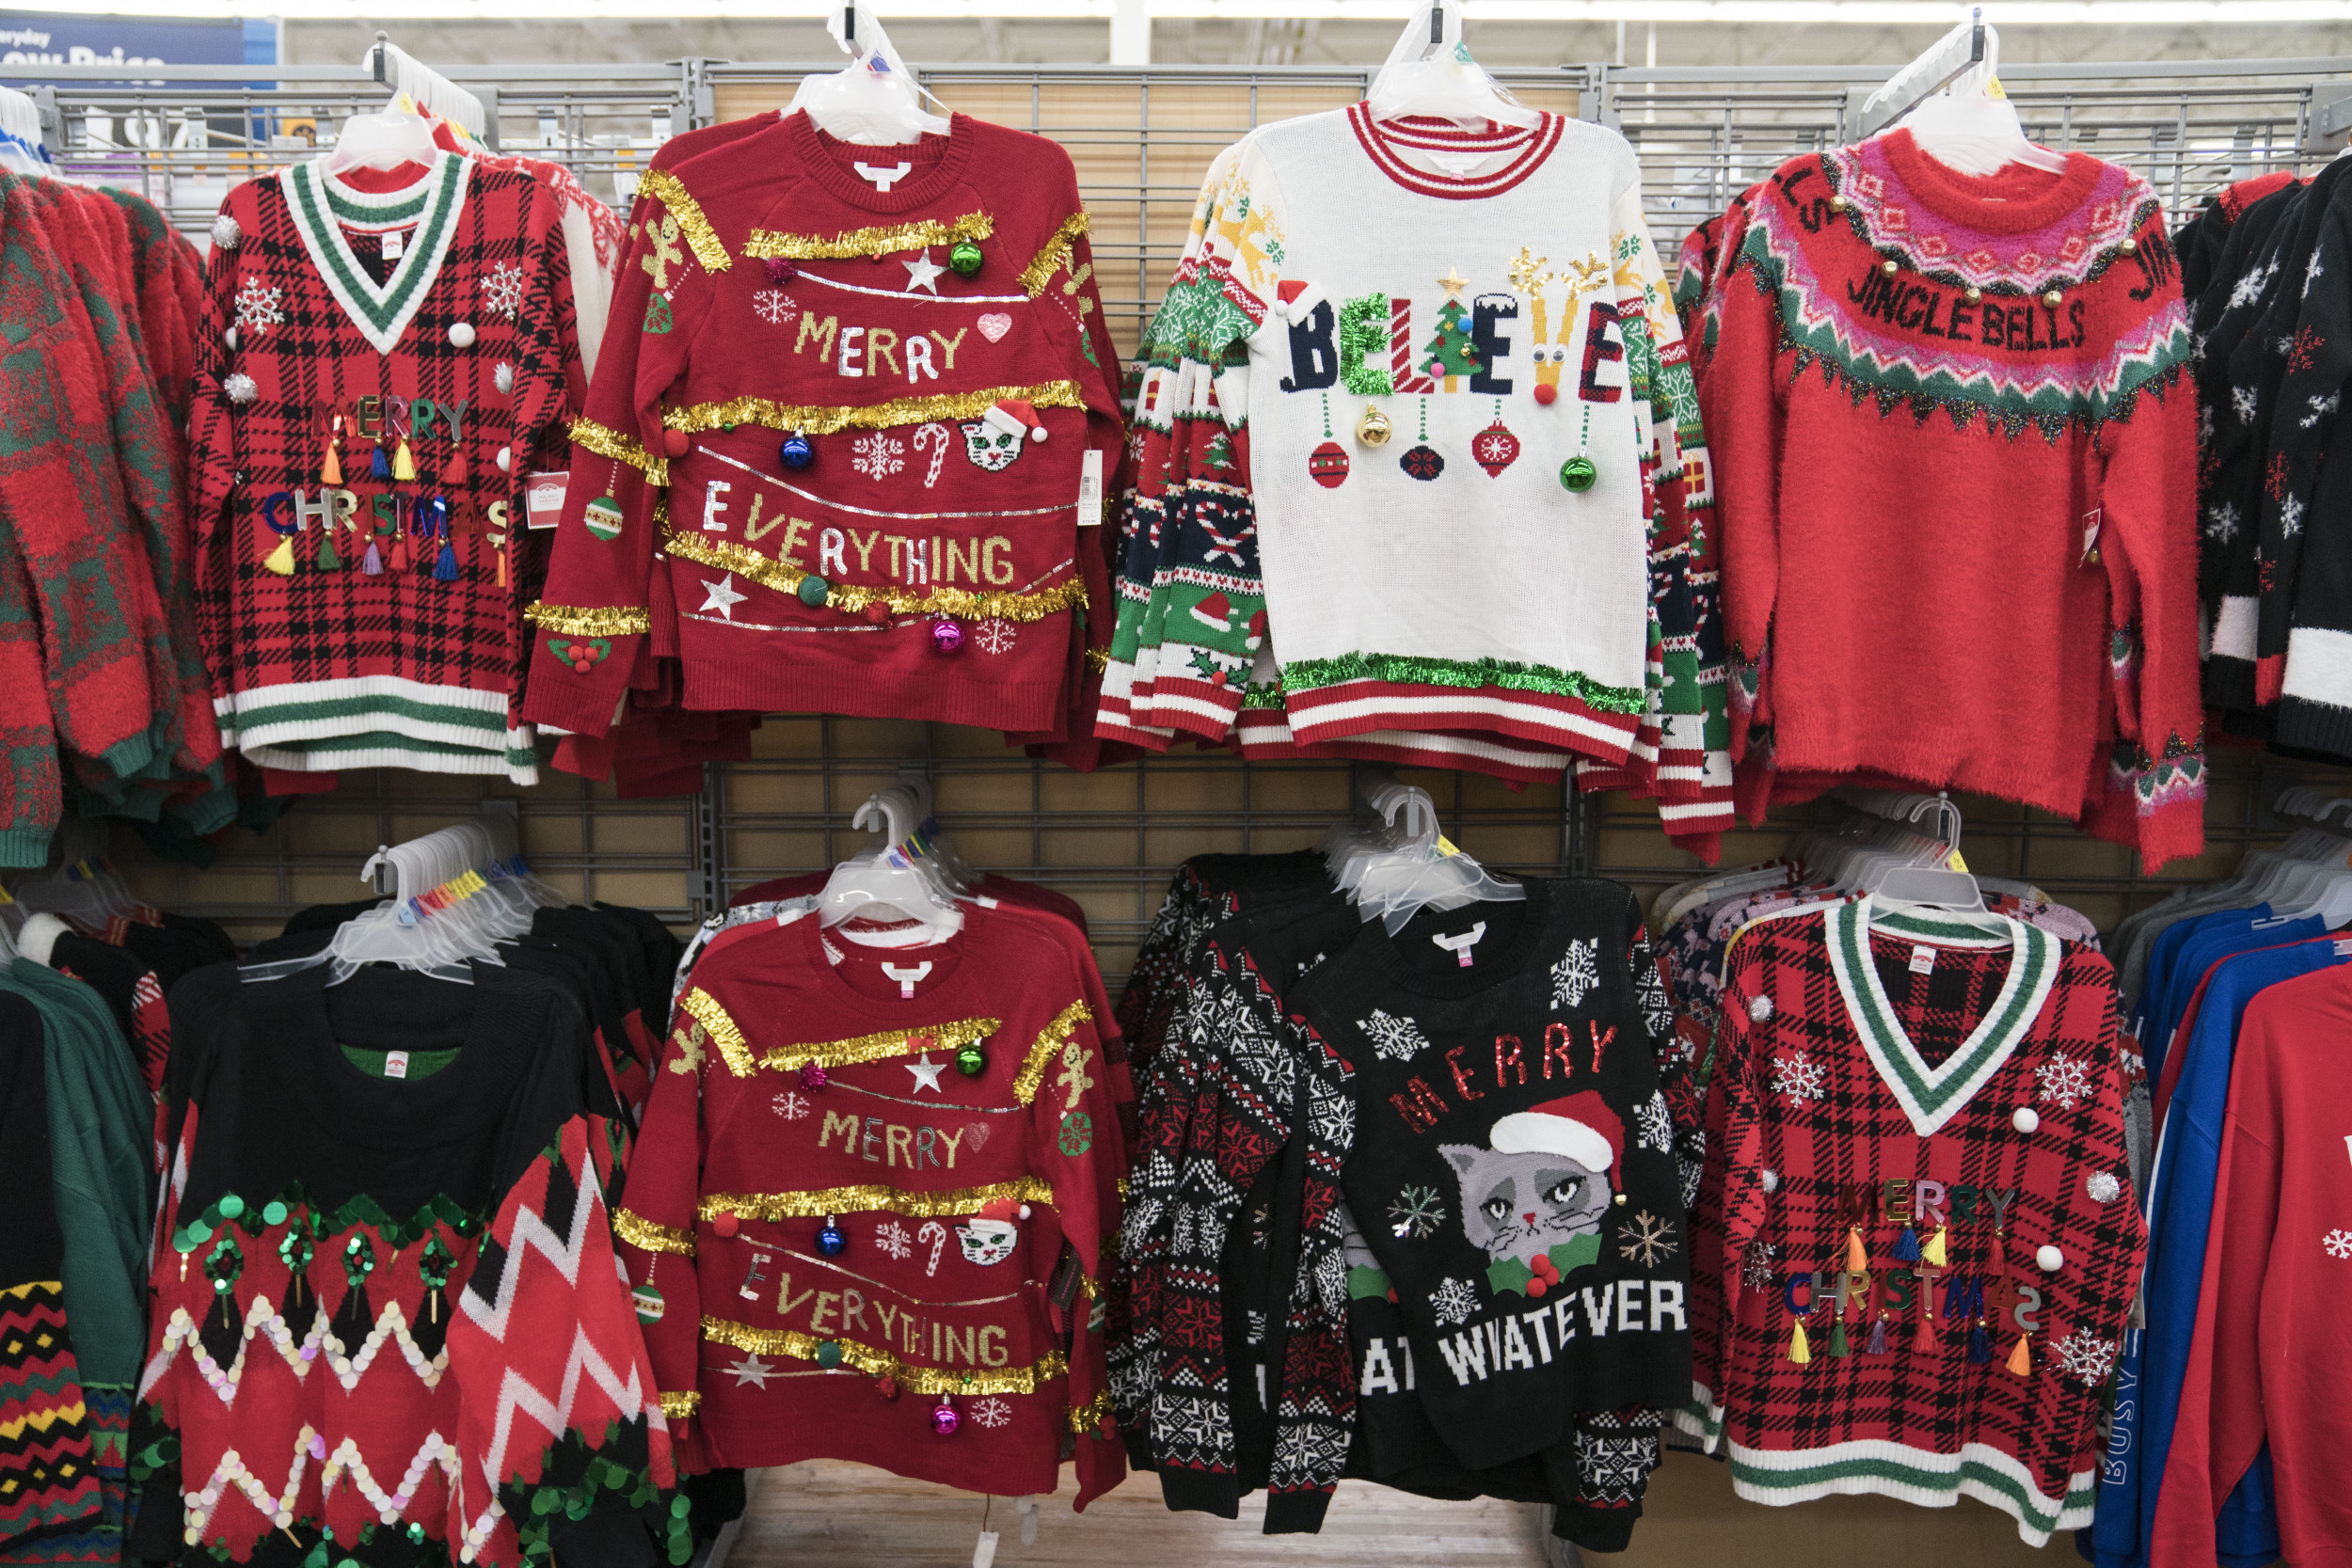 Walmart Apologizes for Selling Christmas Sweaters Appearing